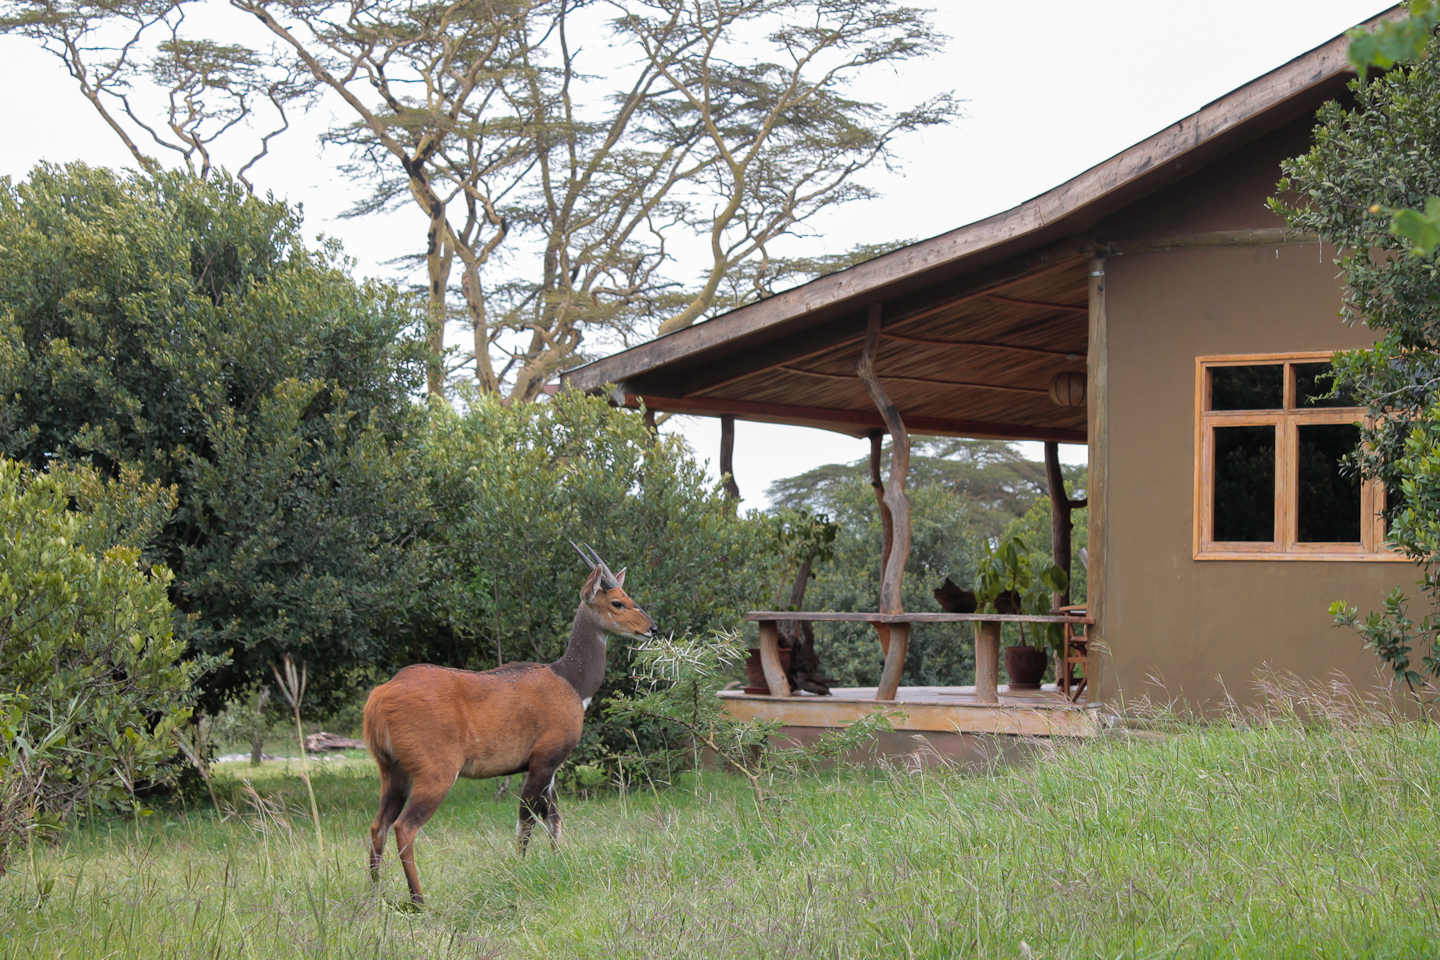 Bushbuck and C2.jpg